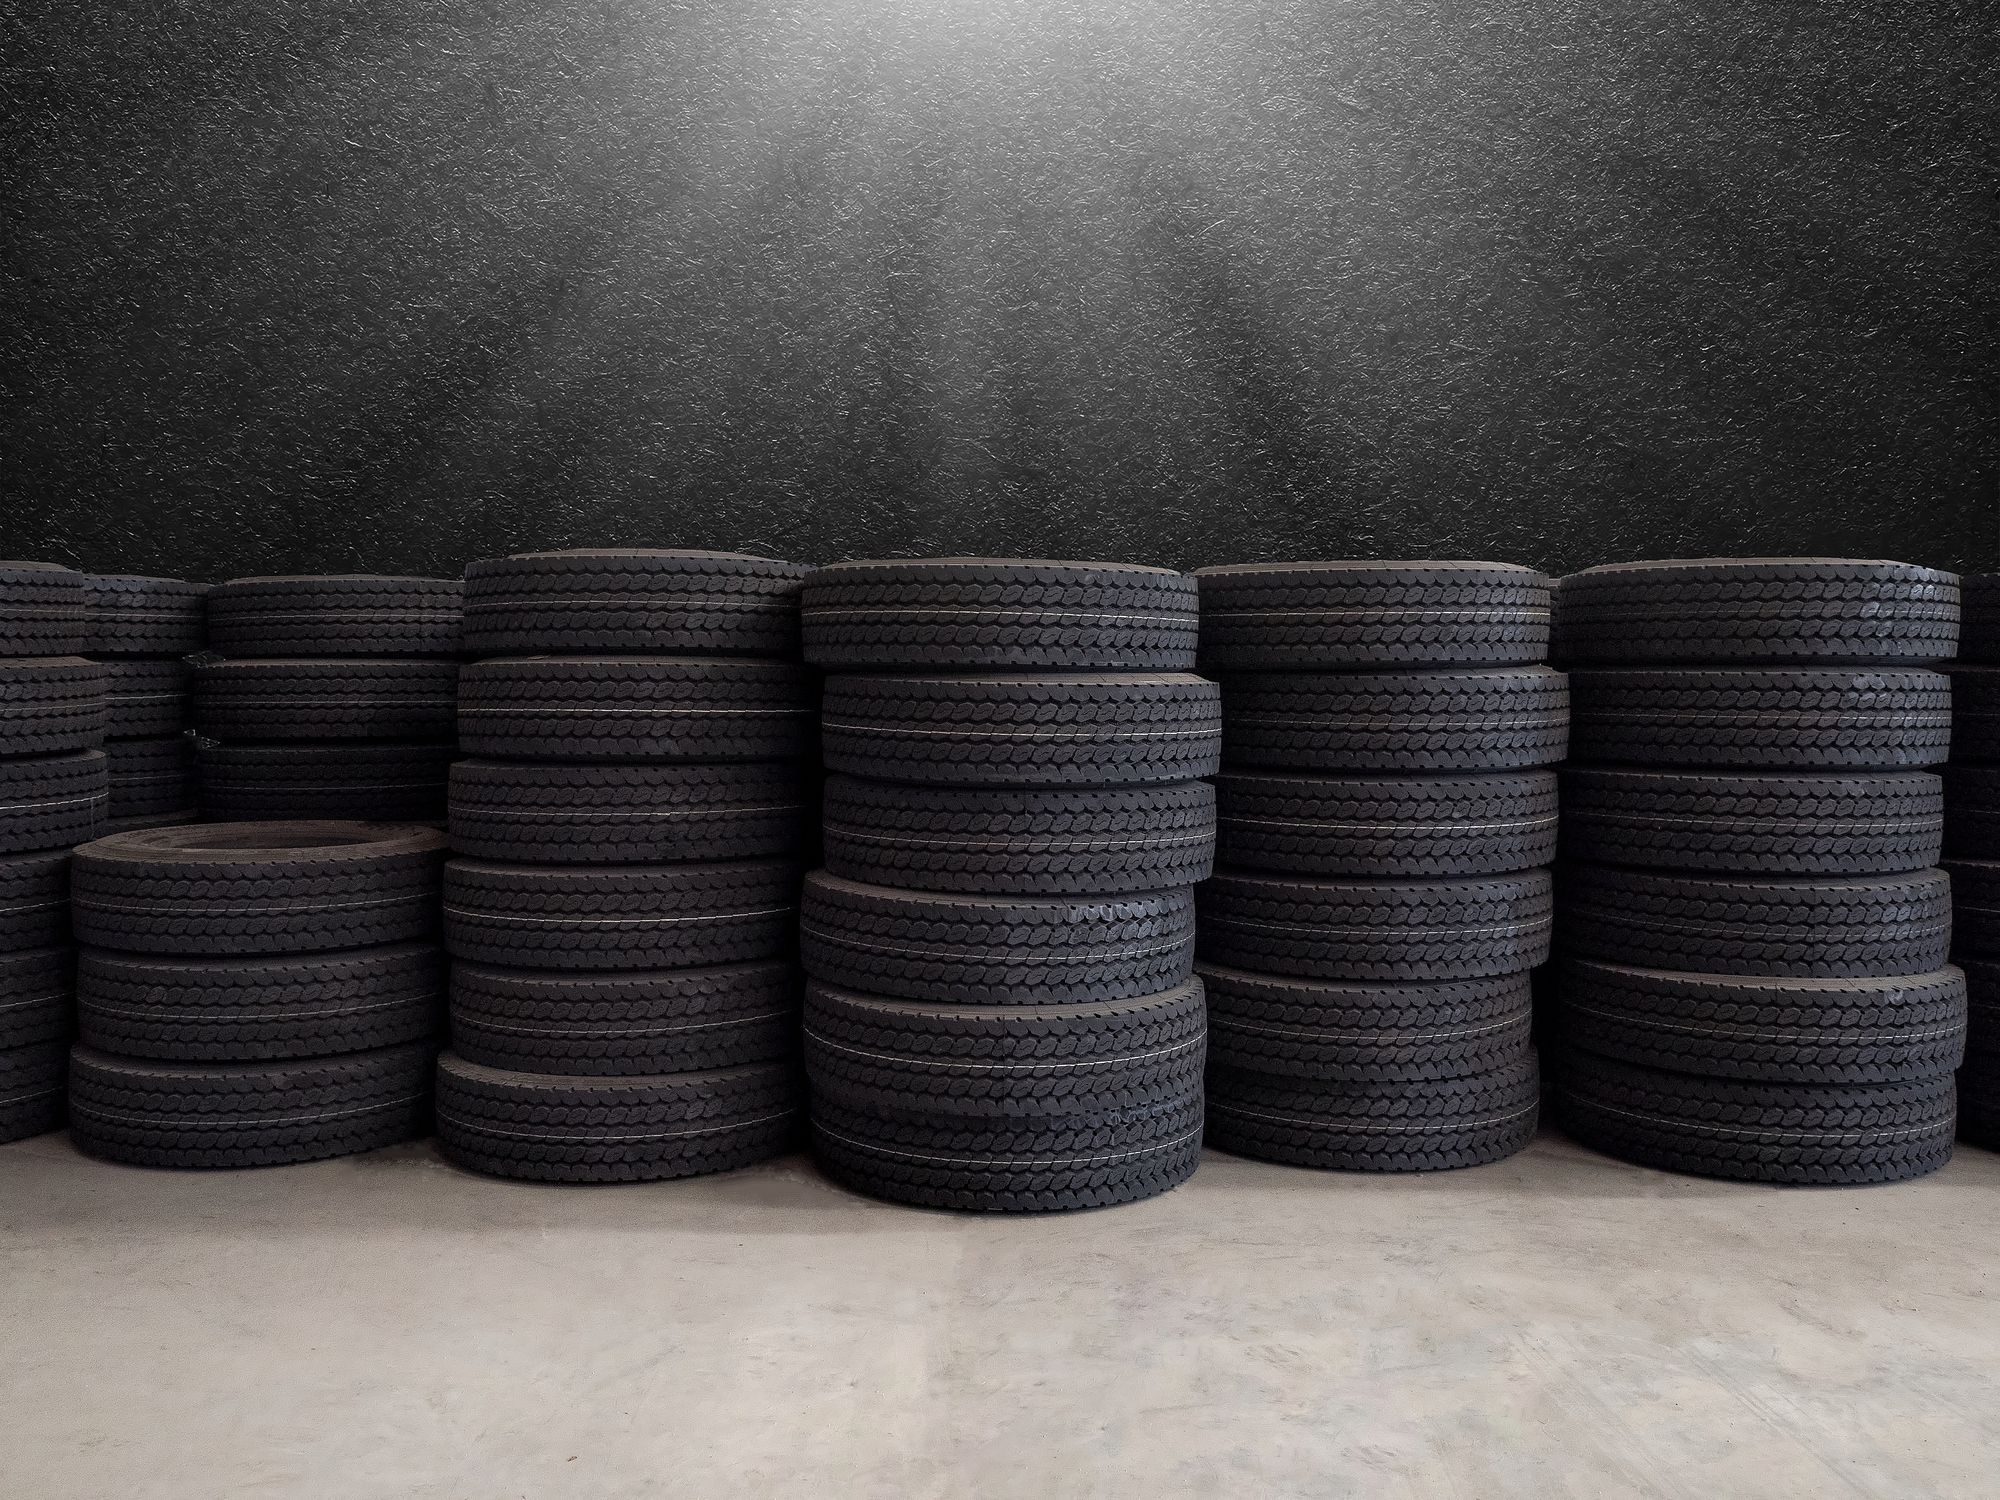 Best Off Road Tires >> How to Store Your Extra Tires When They Aren't in Use